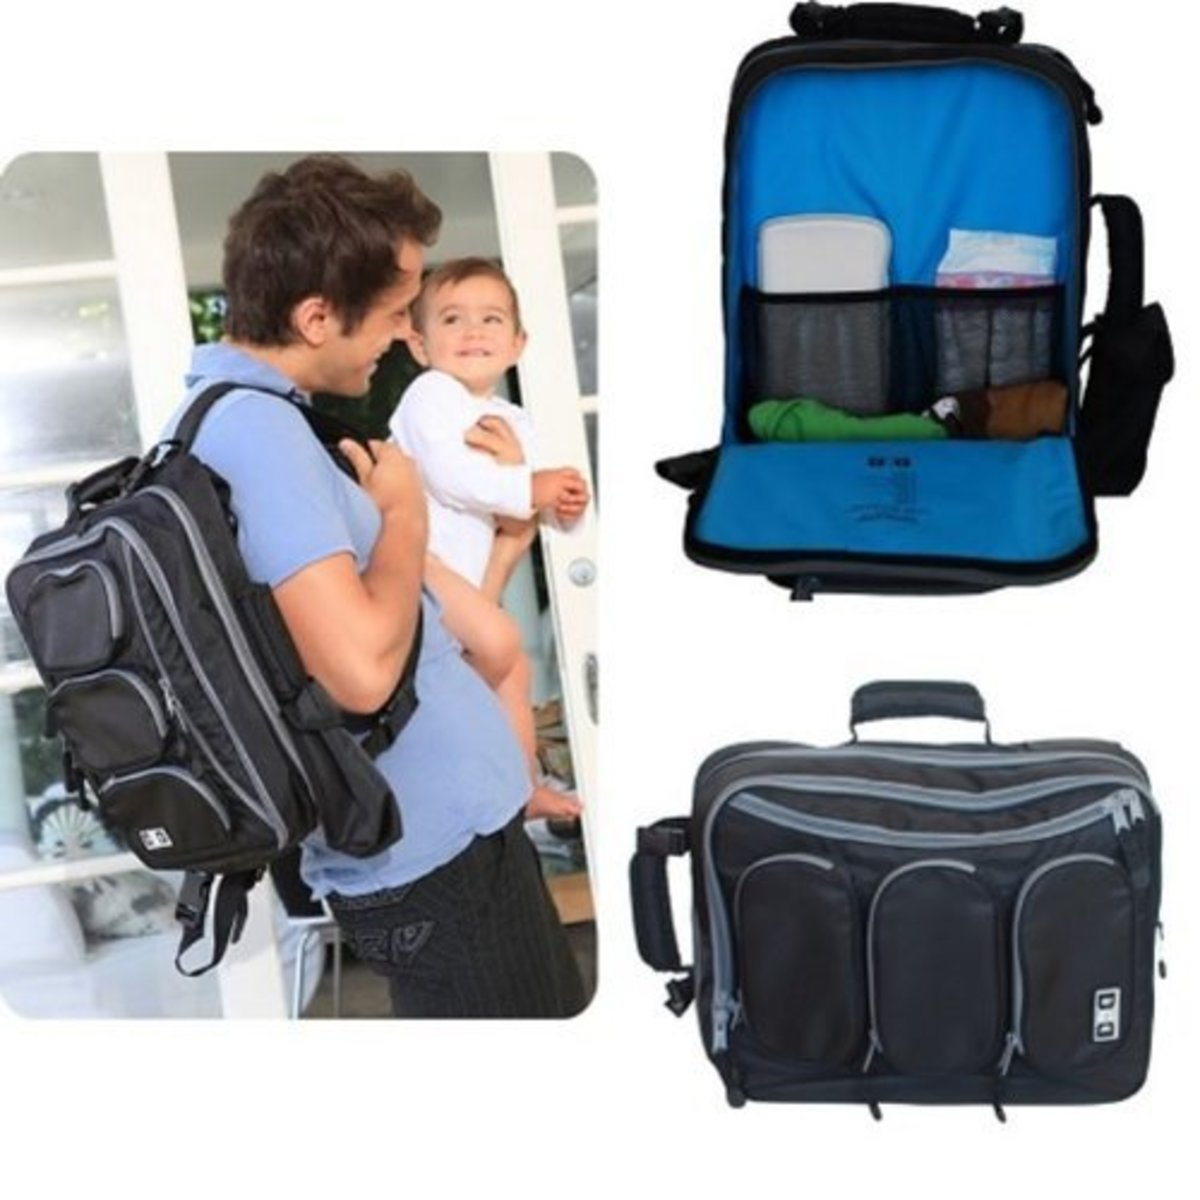 Convertible messenger and backpack diaper bag by Diaper Dude.